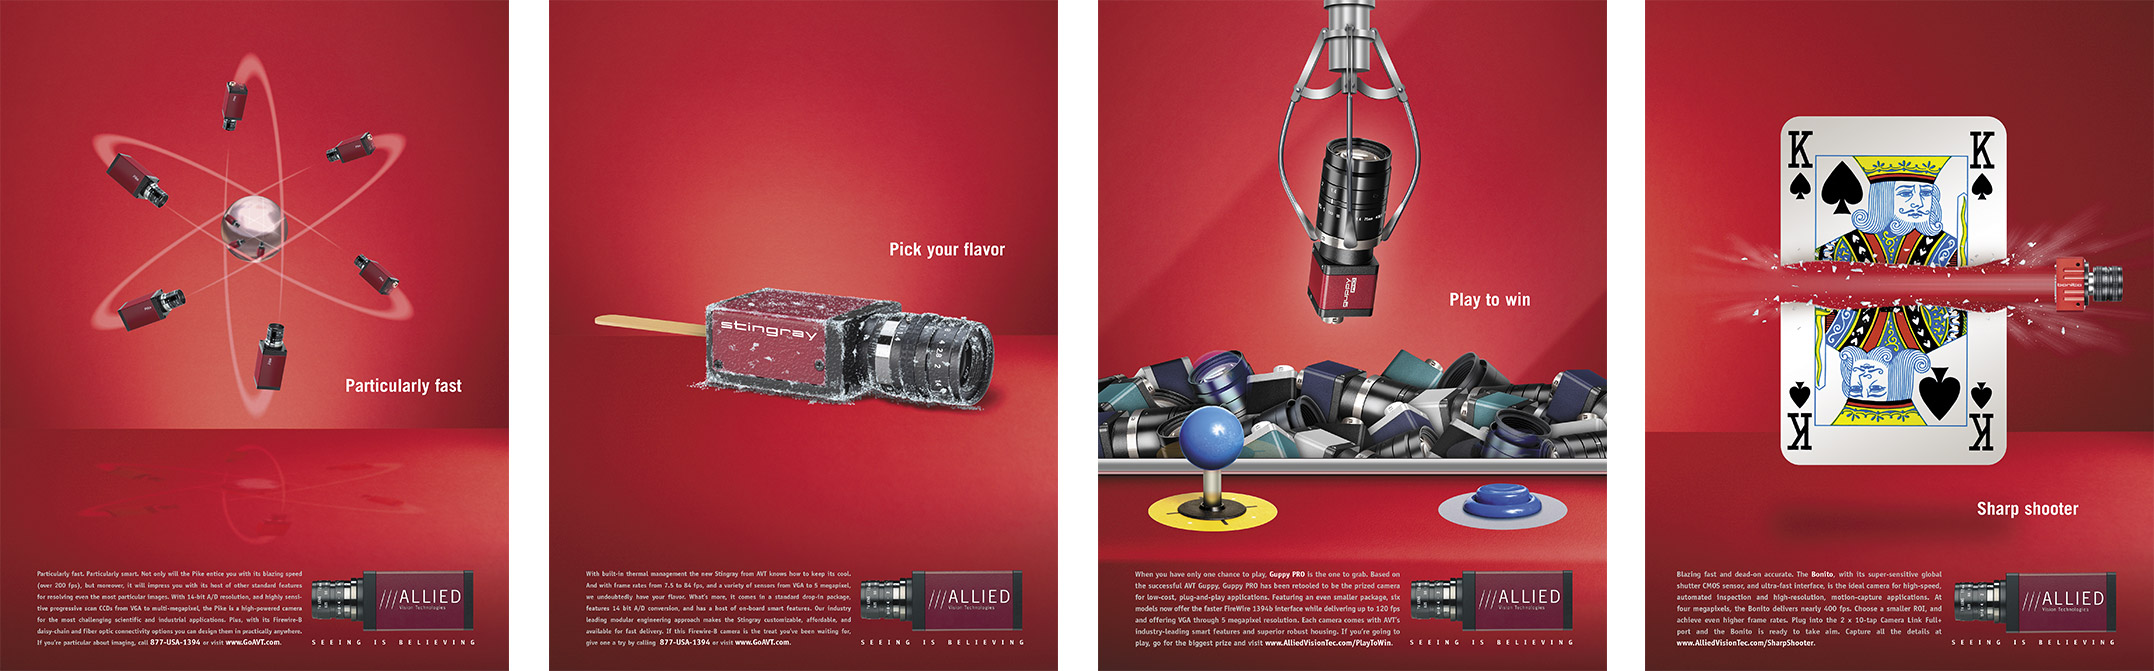 Allied Vision creavtive advertising by Strand Marketing